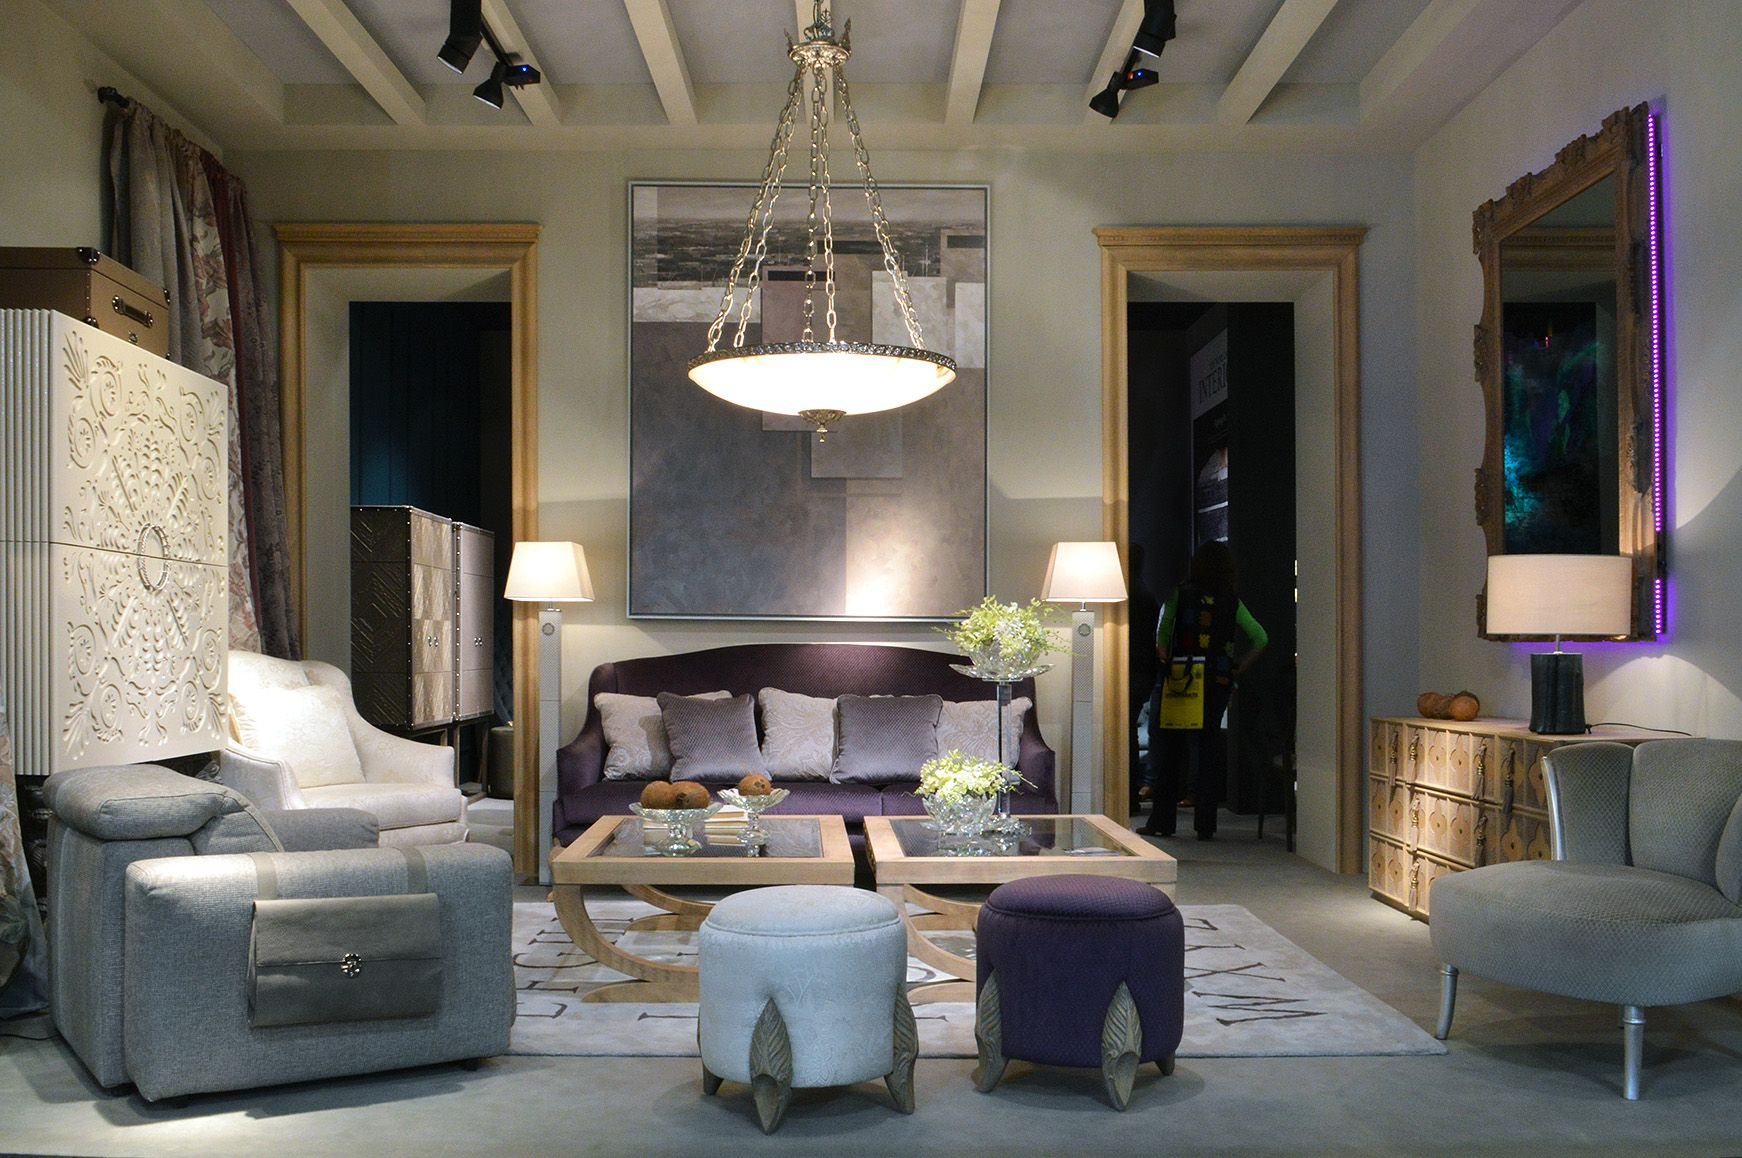 Coleccion alexandra stand at il salone milano 2014 for Il salone milano